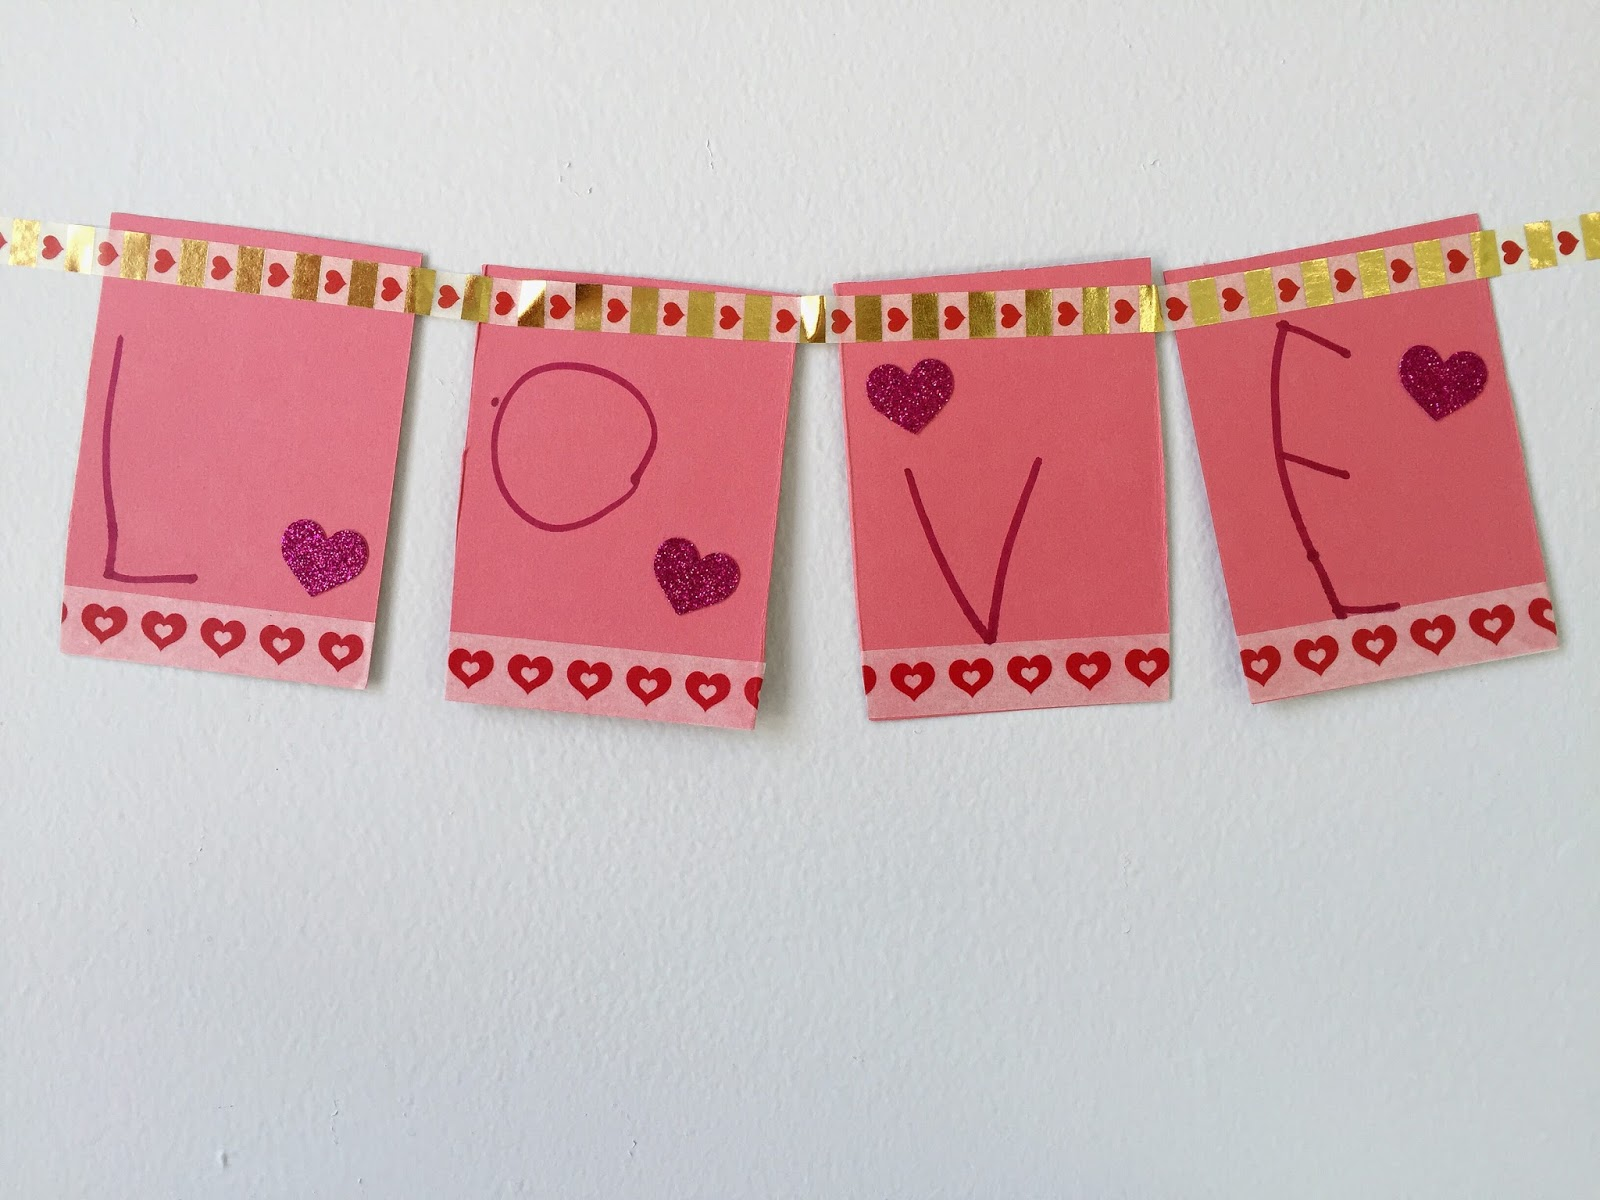 ... To Spell Their Valentine Word And Place A Long Piece Of Washi Tape  Across The Top. Now They Can Hang It On The Wall And Start Decorating For  Valentineu0027s ...